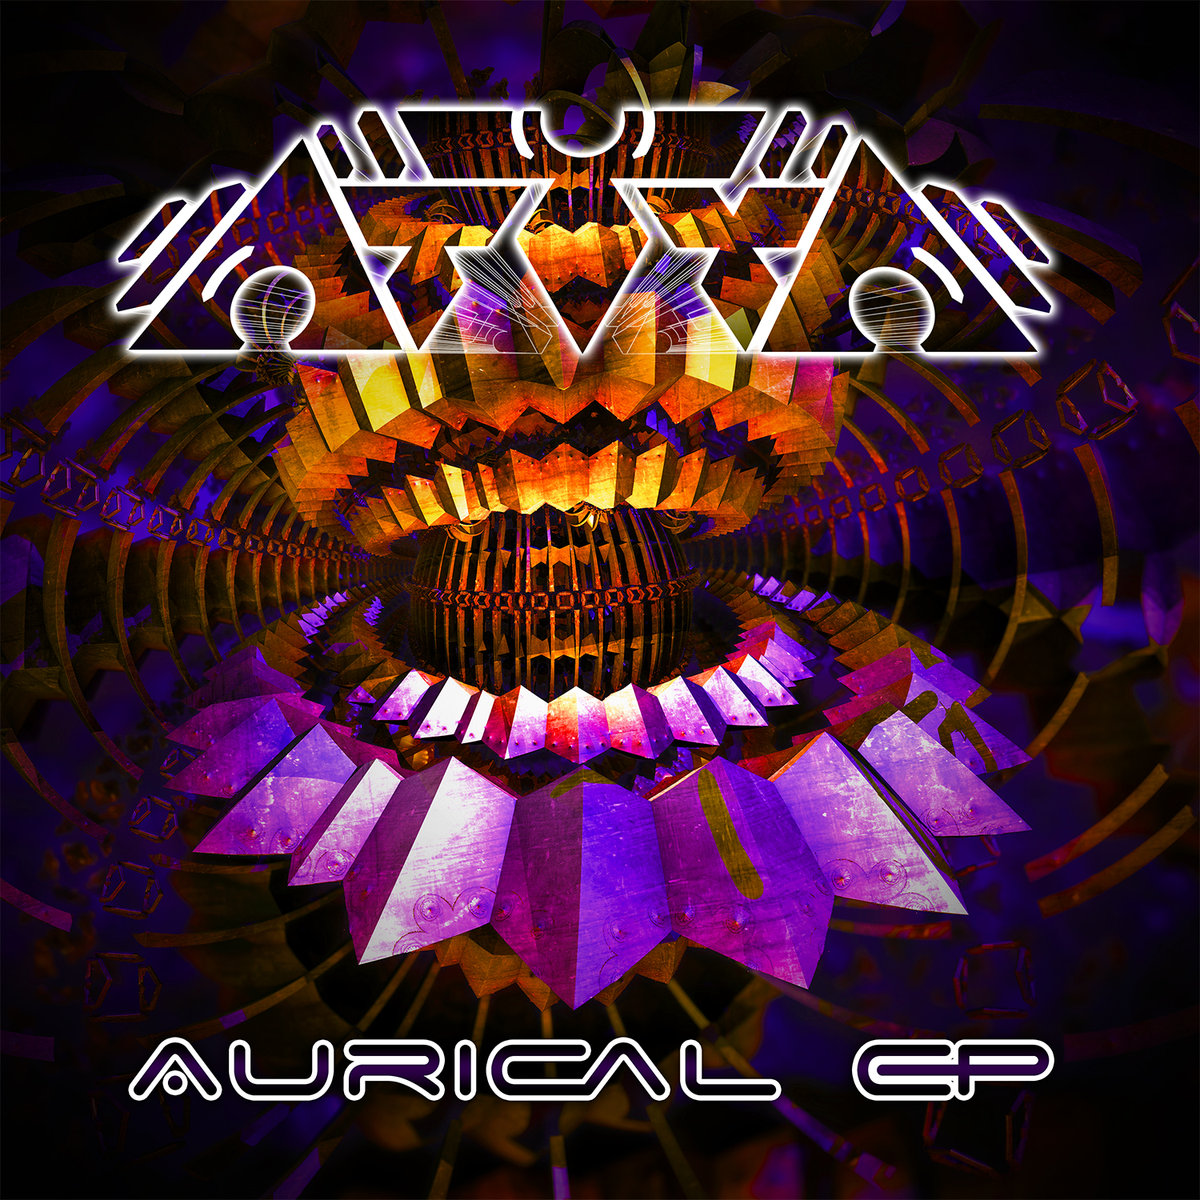 AtYyA - Dream @ 'Aurical' album (432hz, electronic)